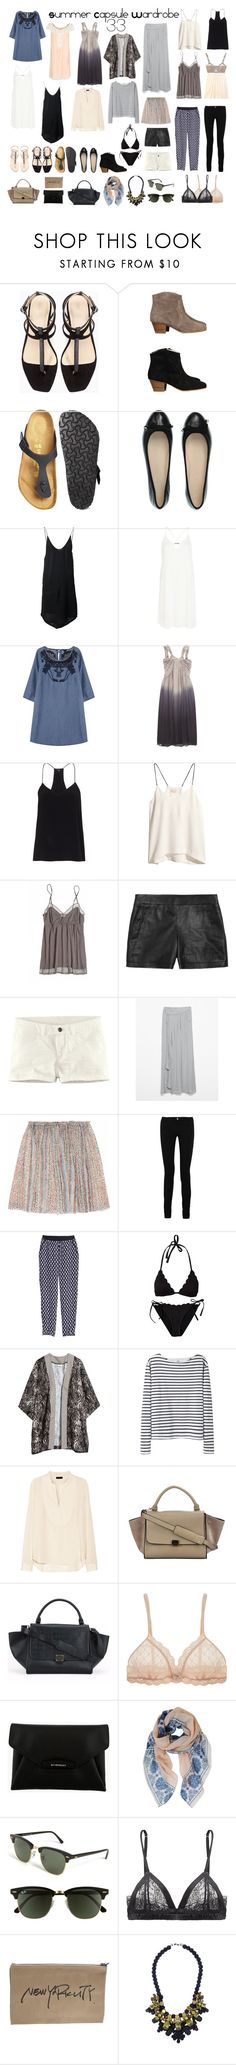 """CAPSULE WARDROBE: Summer 33"" by rocknrollchic ❤ liked on Polyvore featuring Zara, Birkenstock, MaxMara, IRO, River Island, Maison Scotch, DAY Birger et Mikkelsen, TIBI, H&M and Calypso St. Barth"